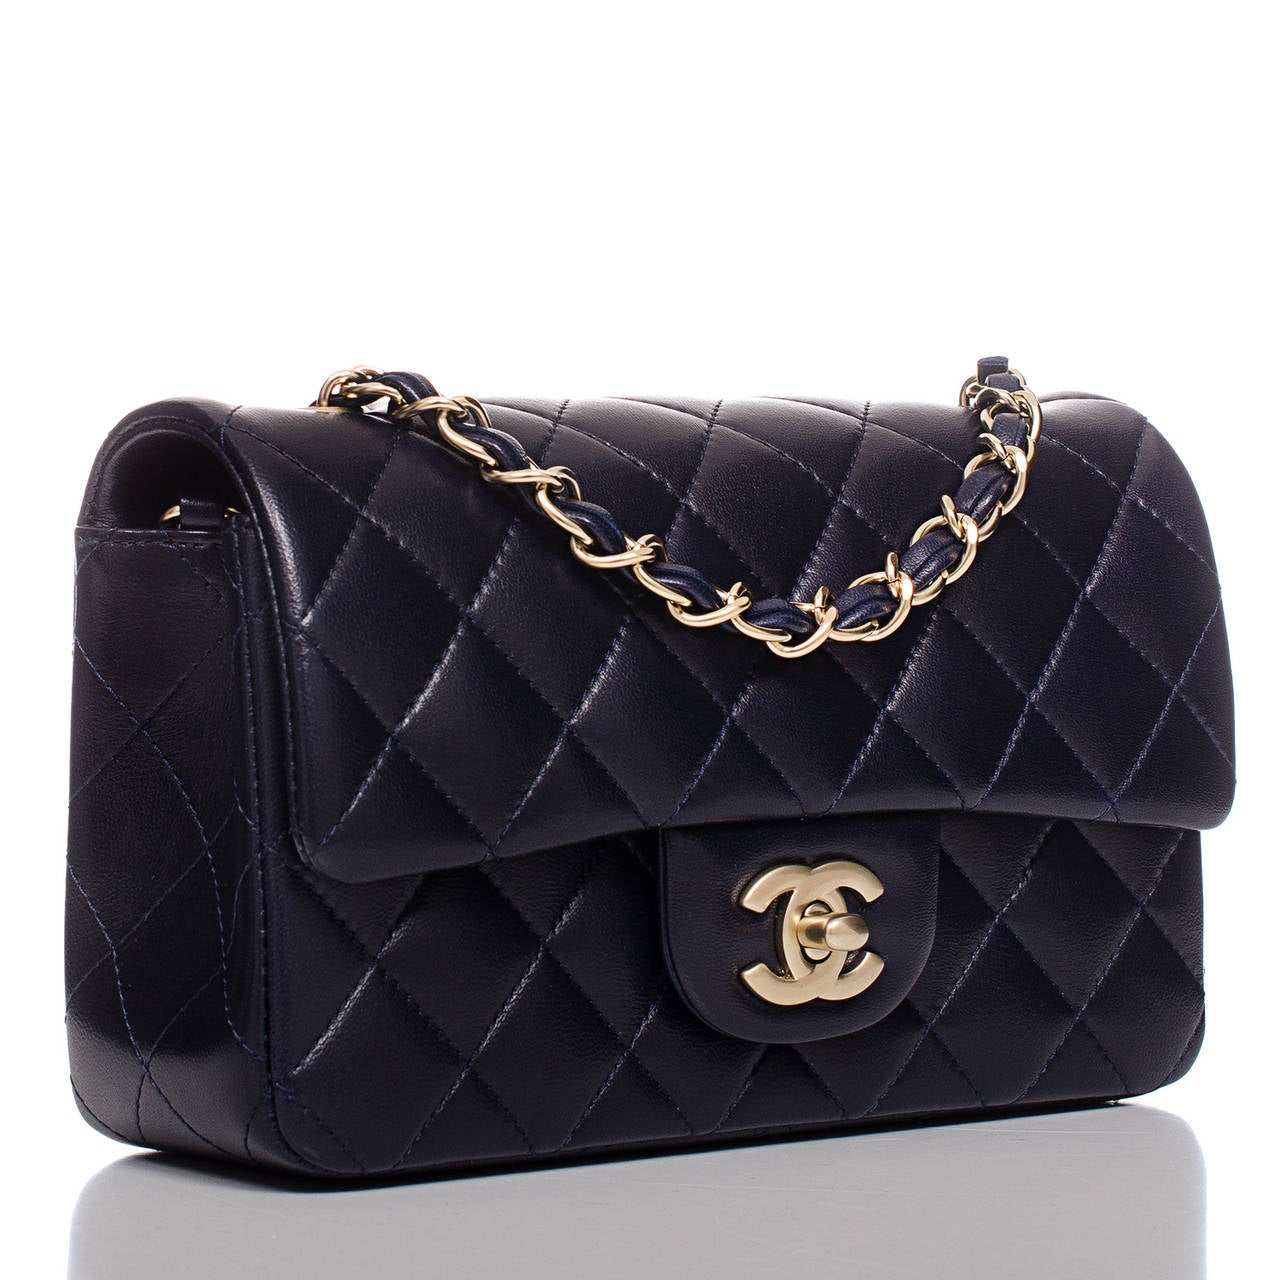 Chanel Navy Quilted Lambskin Small Classic Flap Bag At 1stdibs